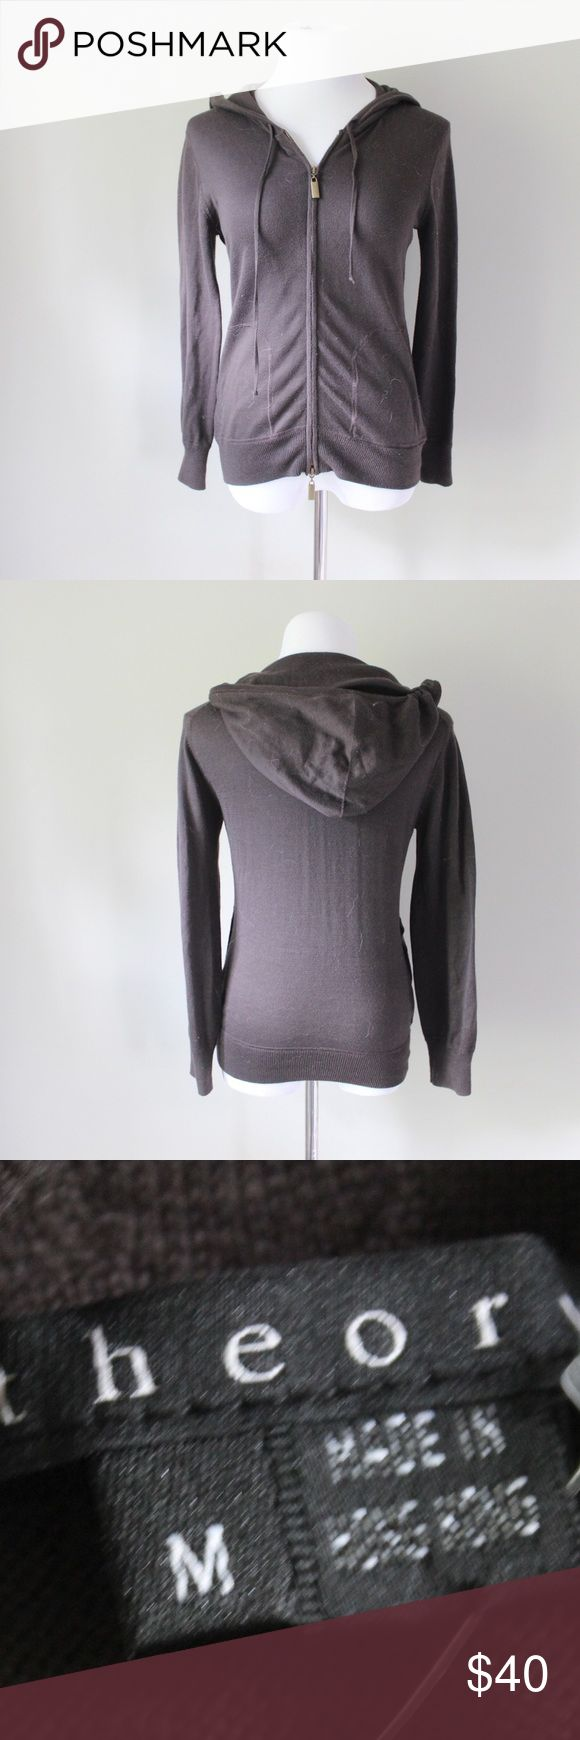 Theory Zip Up Hoodie Theory brown zip up hoodie.  Fits true to size. Shown on a size 4/6 mannequin. In gently used good condition. Measurements available upon request. All orders ship same or next business day! Theory Sweaters